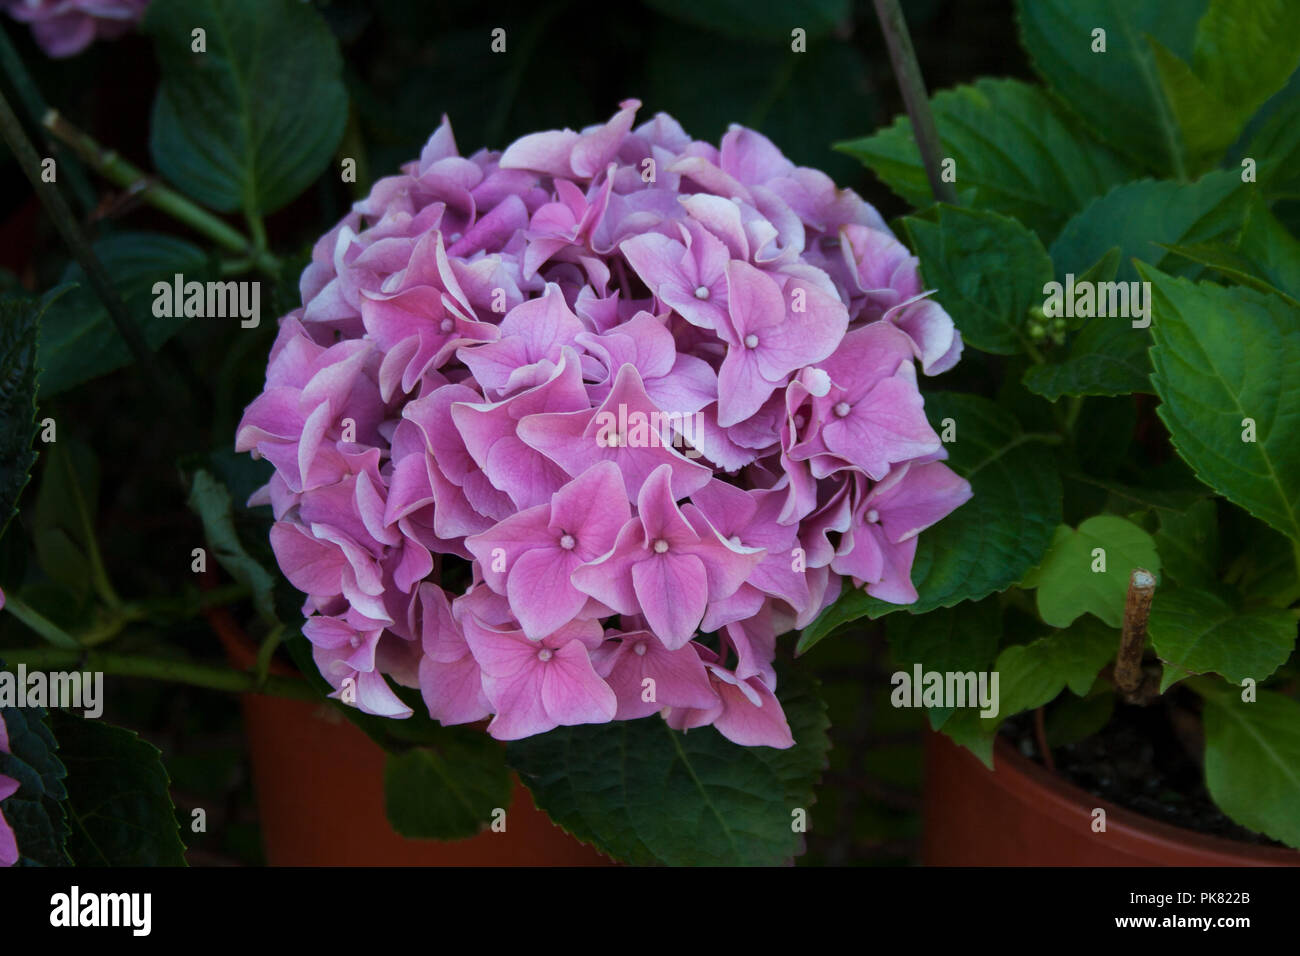 A Beautiful Potted Plant That Is Blooming Pink Flowers Stock Photos